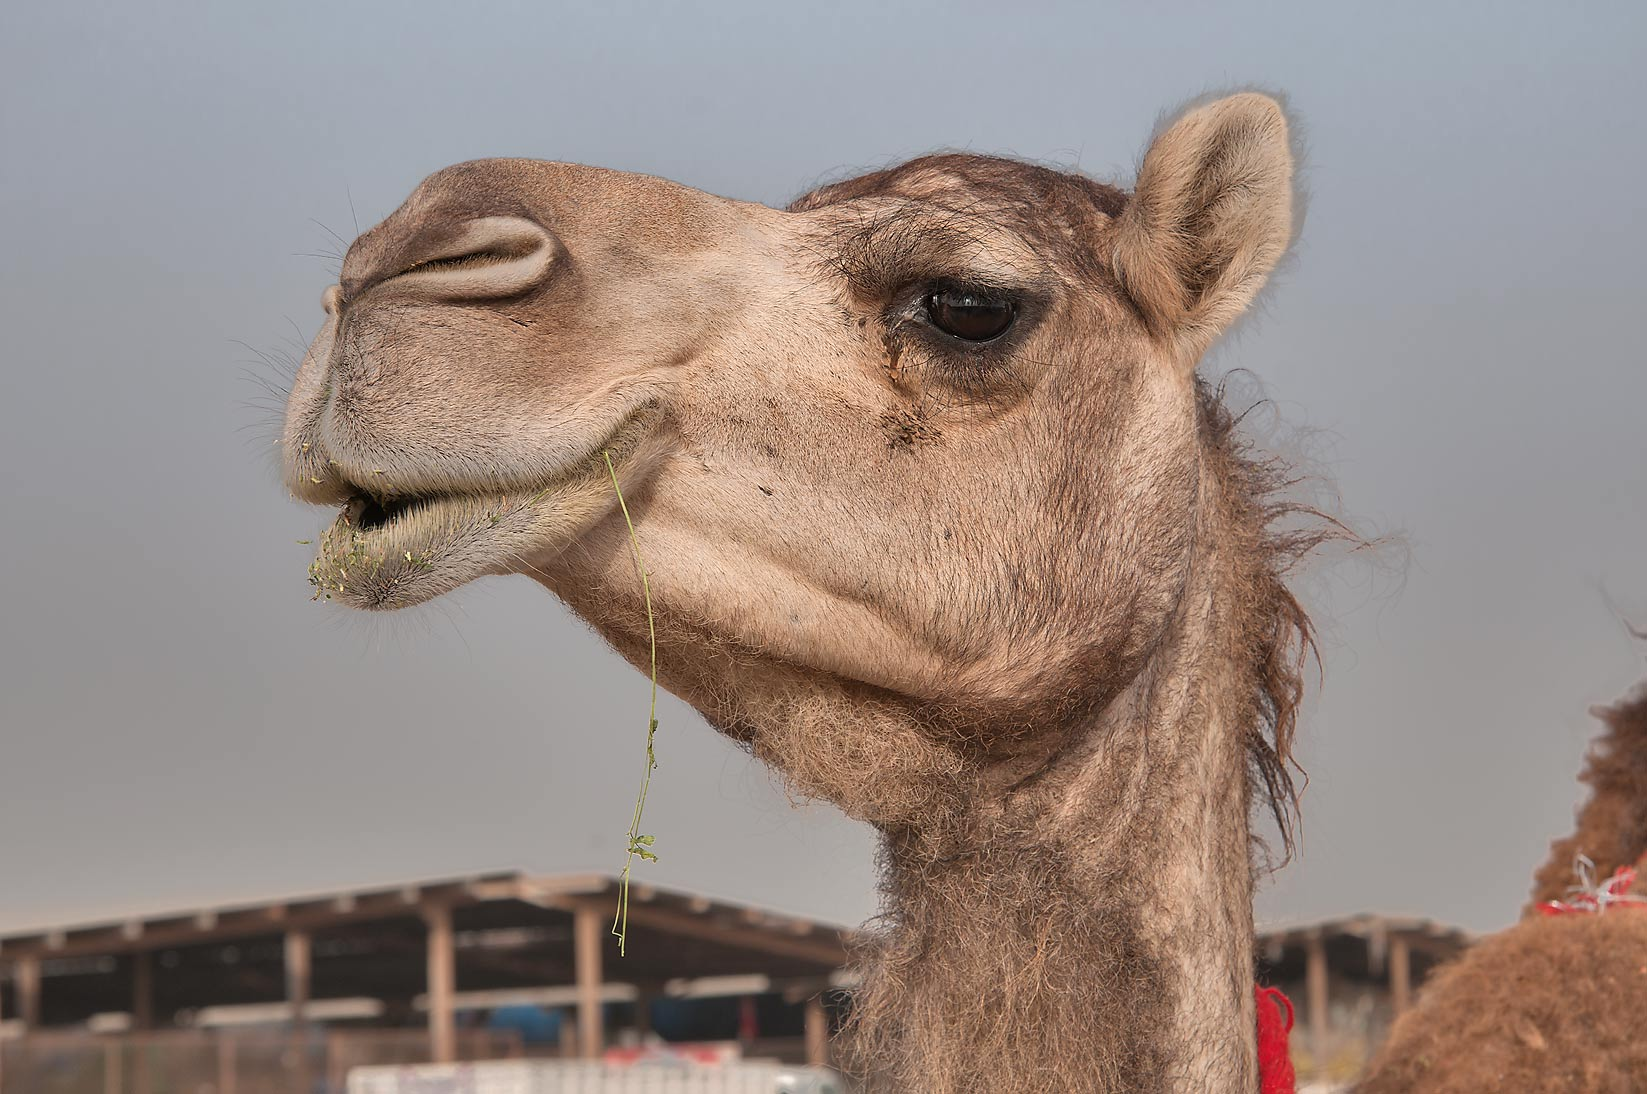 Camel chewing a stalk in Wholesale Animal Market. Doha, Qatar